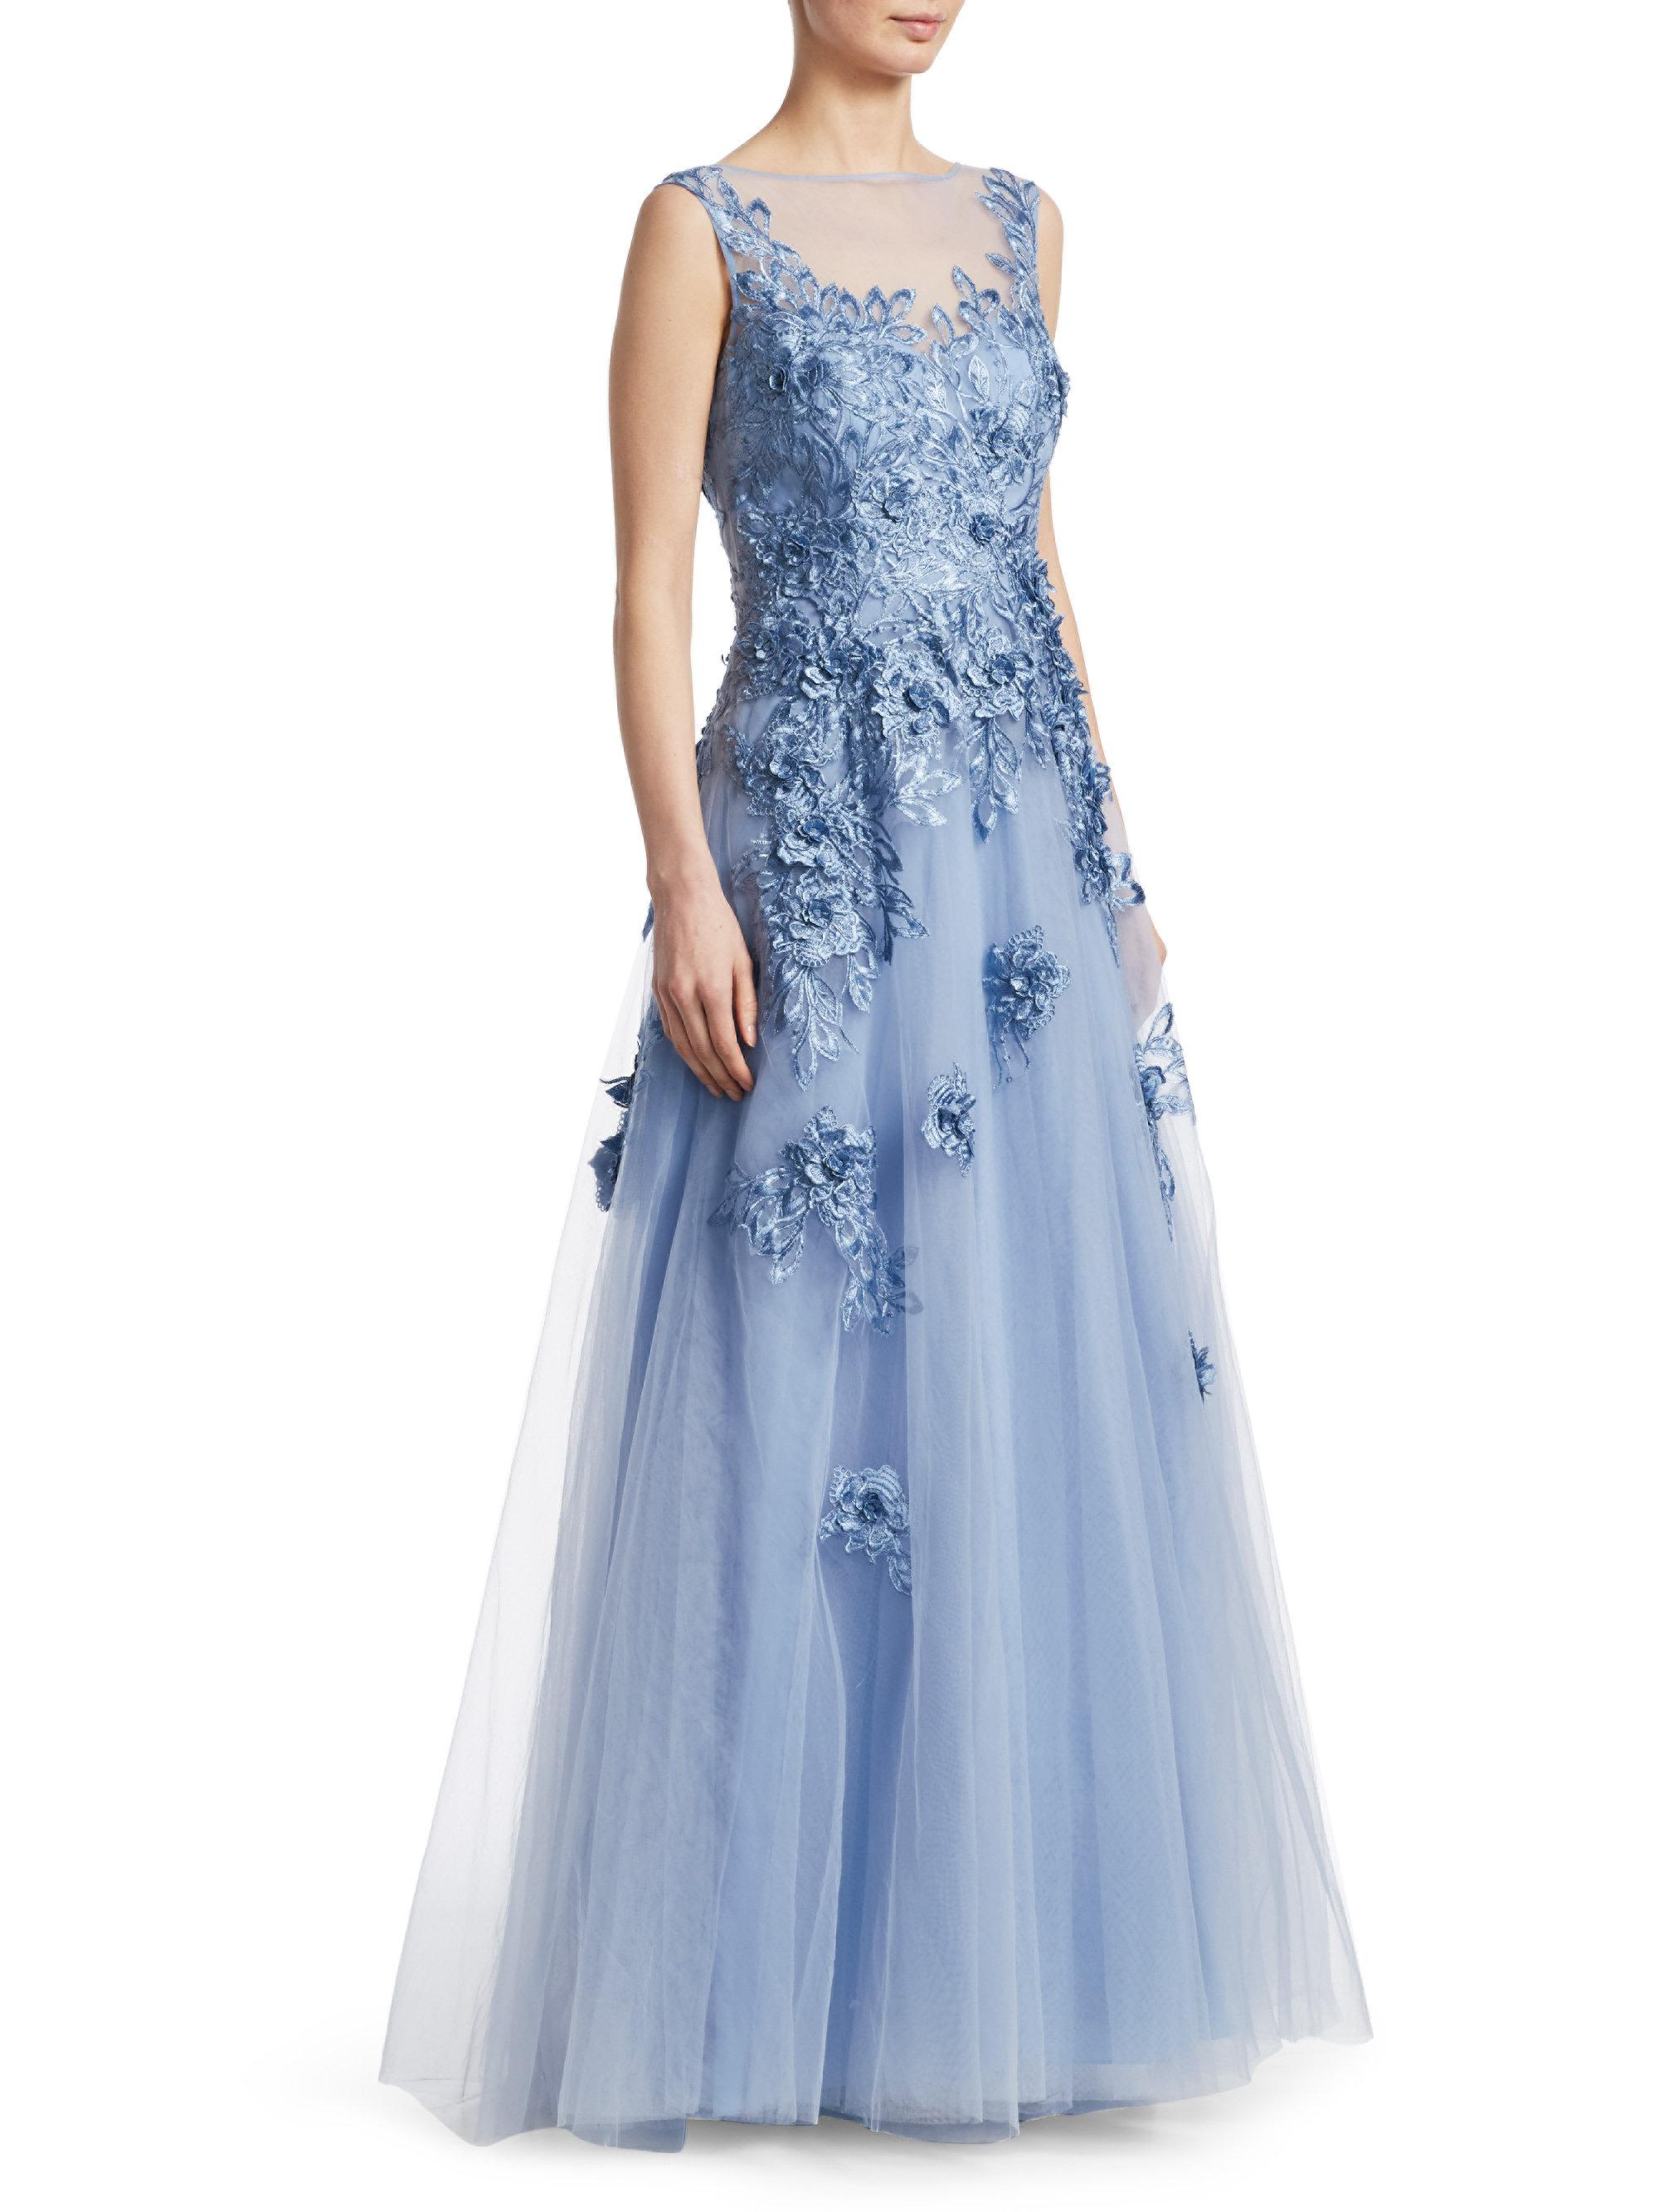 Nice Saks Fifth Avenue Wedding Gowns Pictures - Wedding and flowers ...